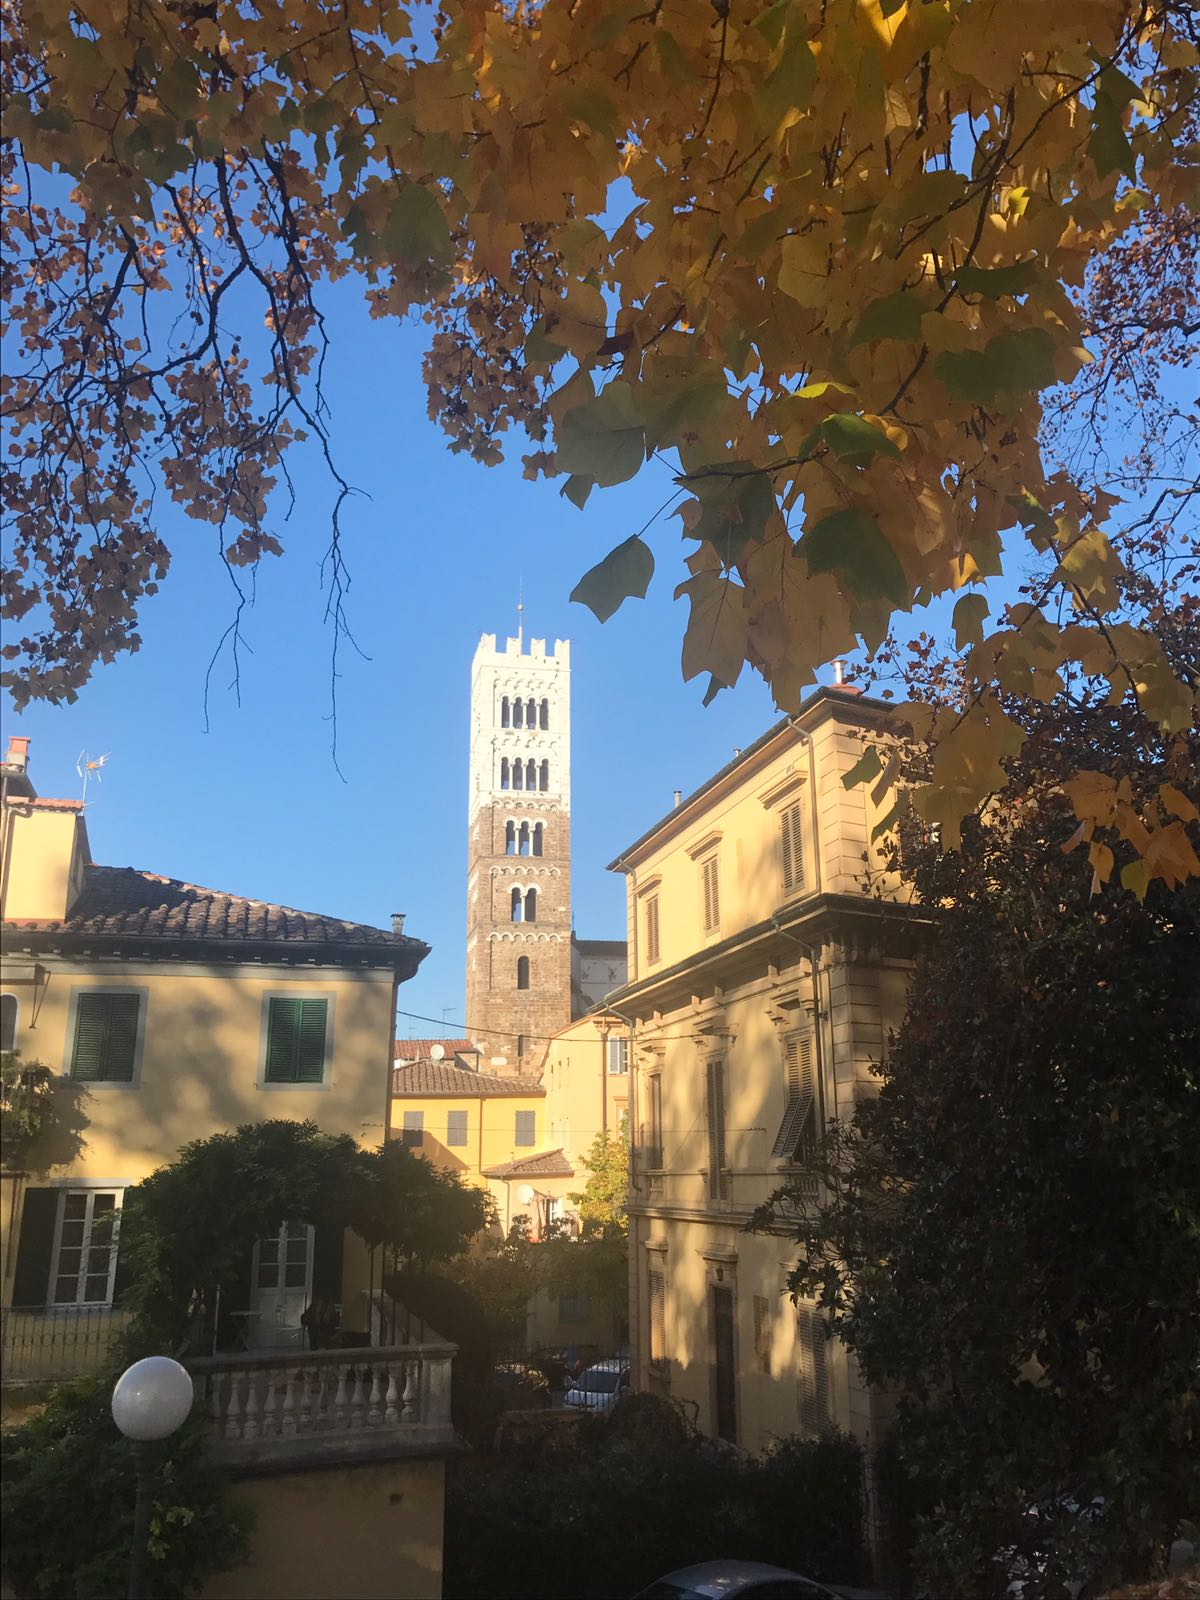 A church tower, surrounded by old Italian houses, seen through the leaves of autumn trees